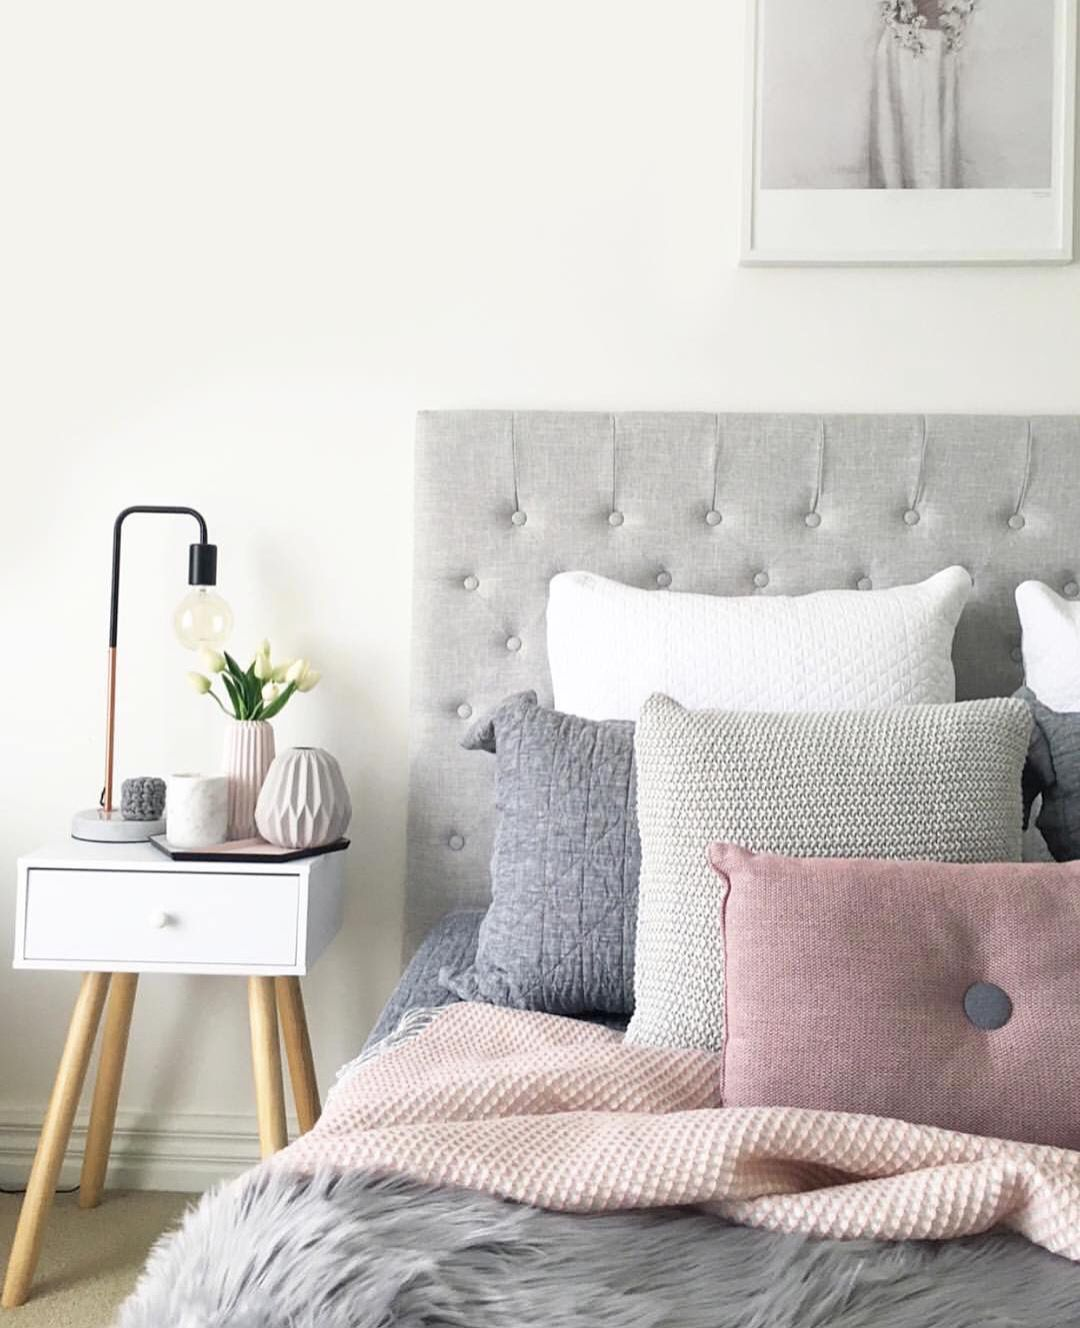 Make Your Bedroom Sizzle with Unique Headboard Designs